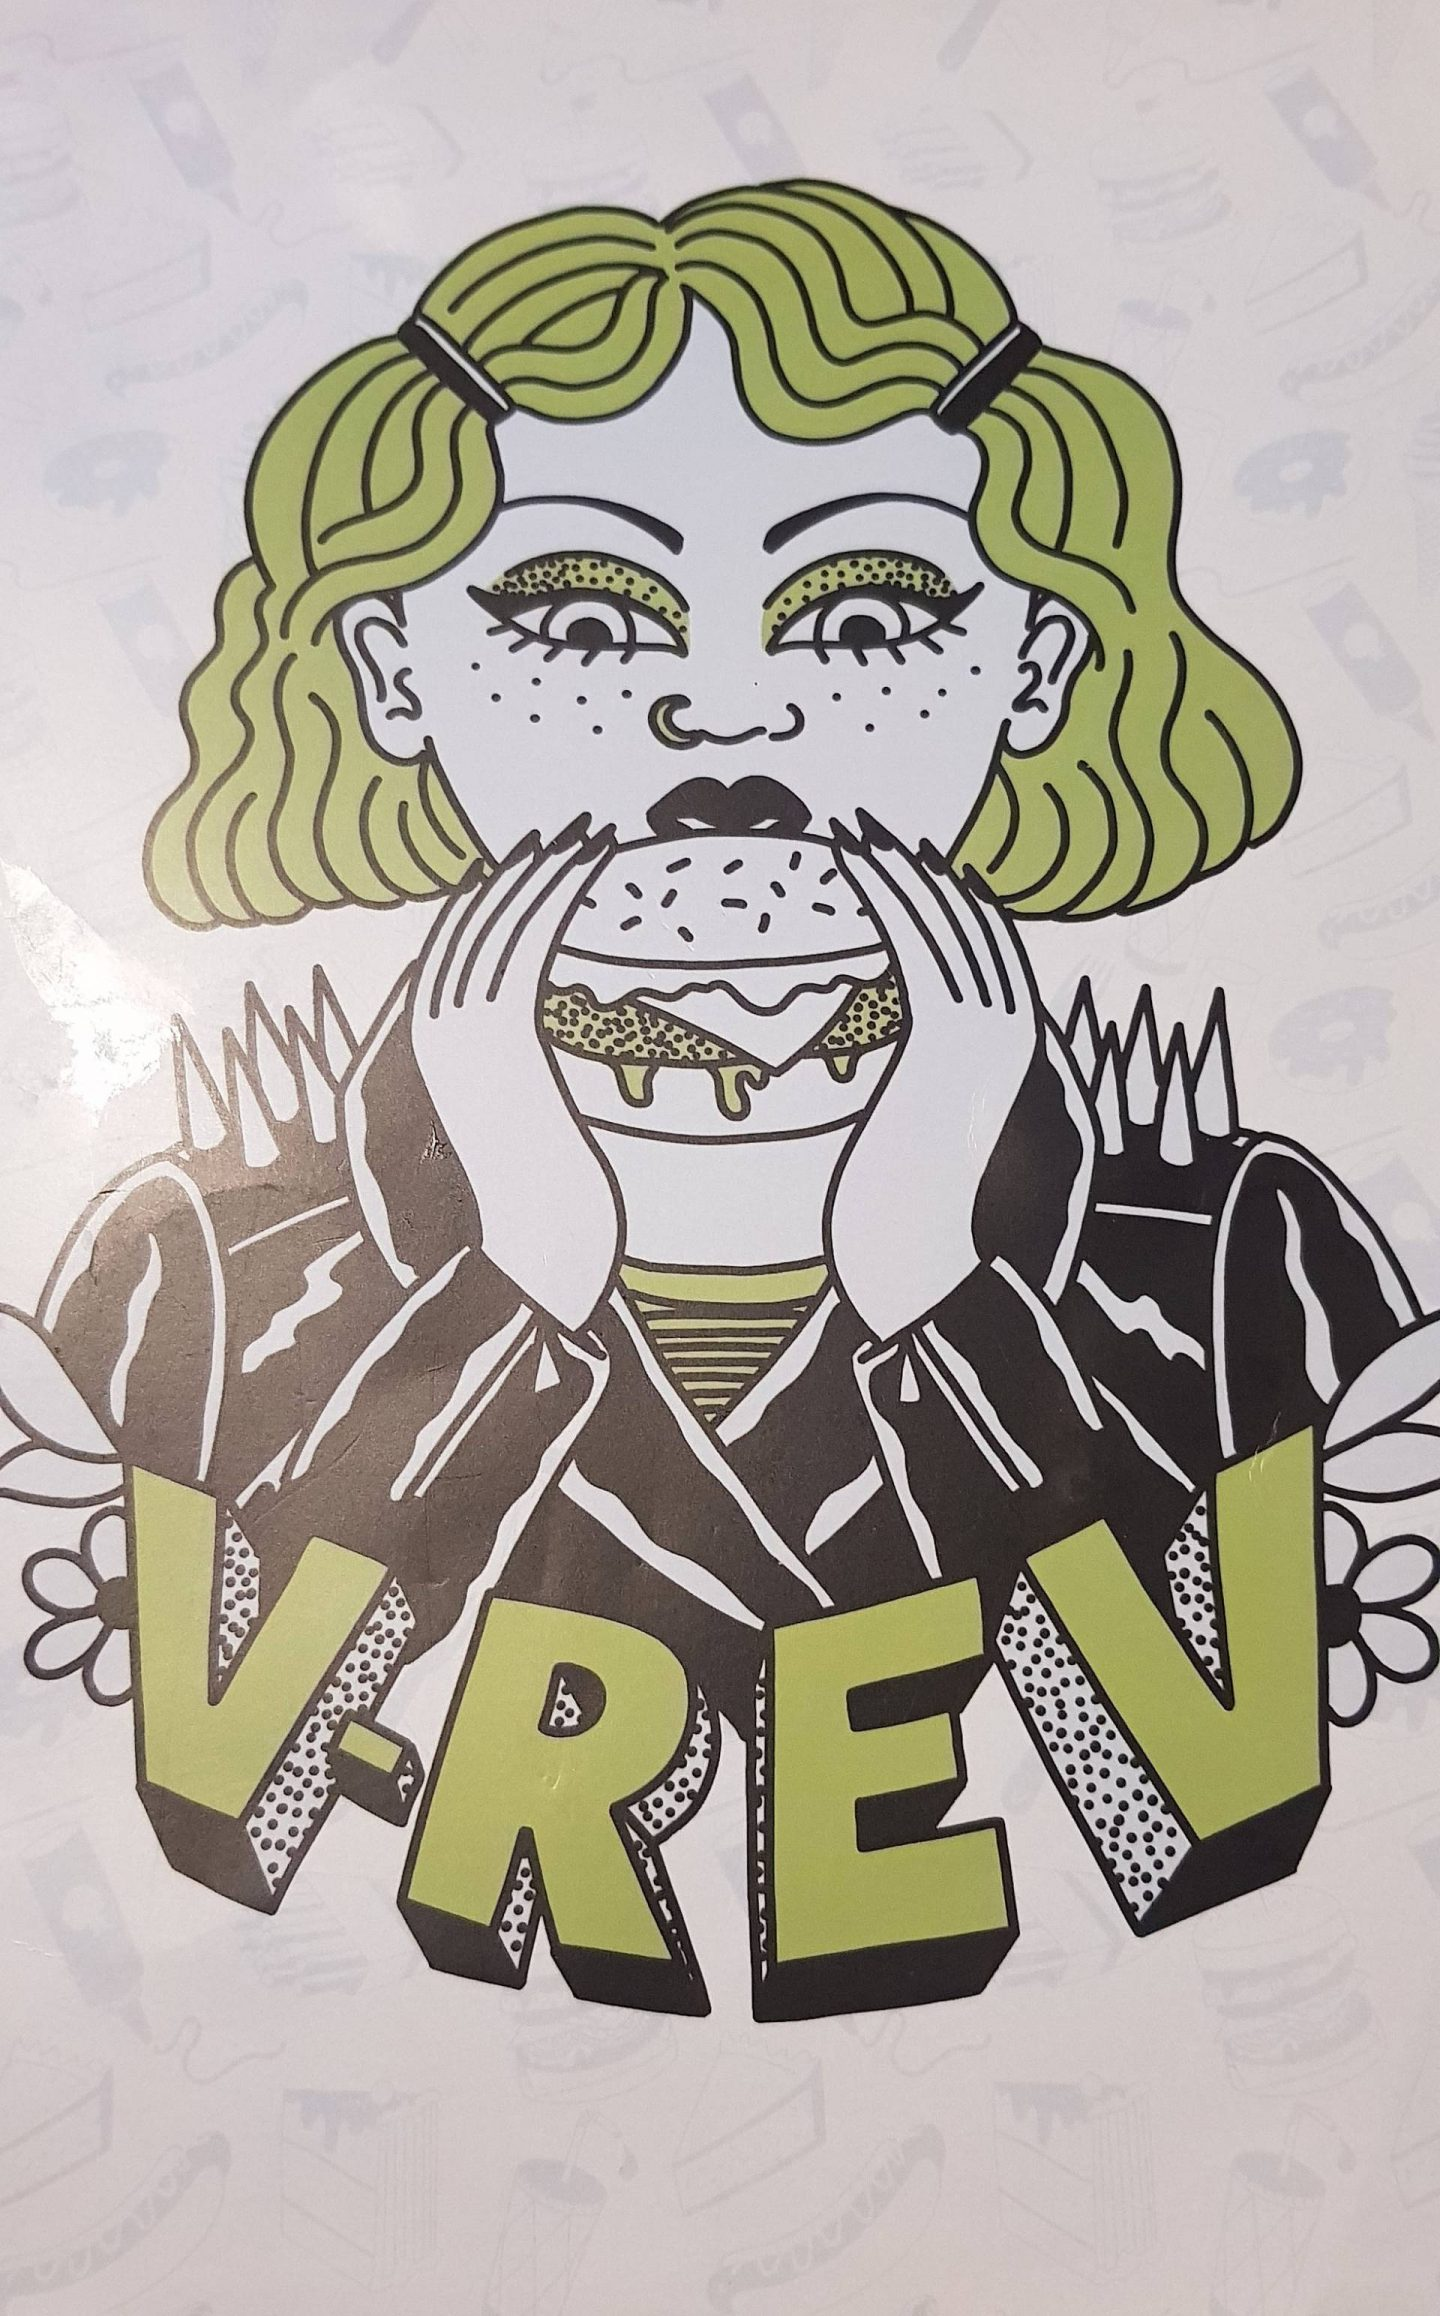 V-Rev vegan diner